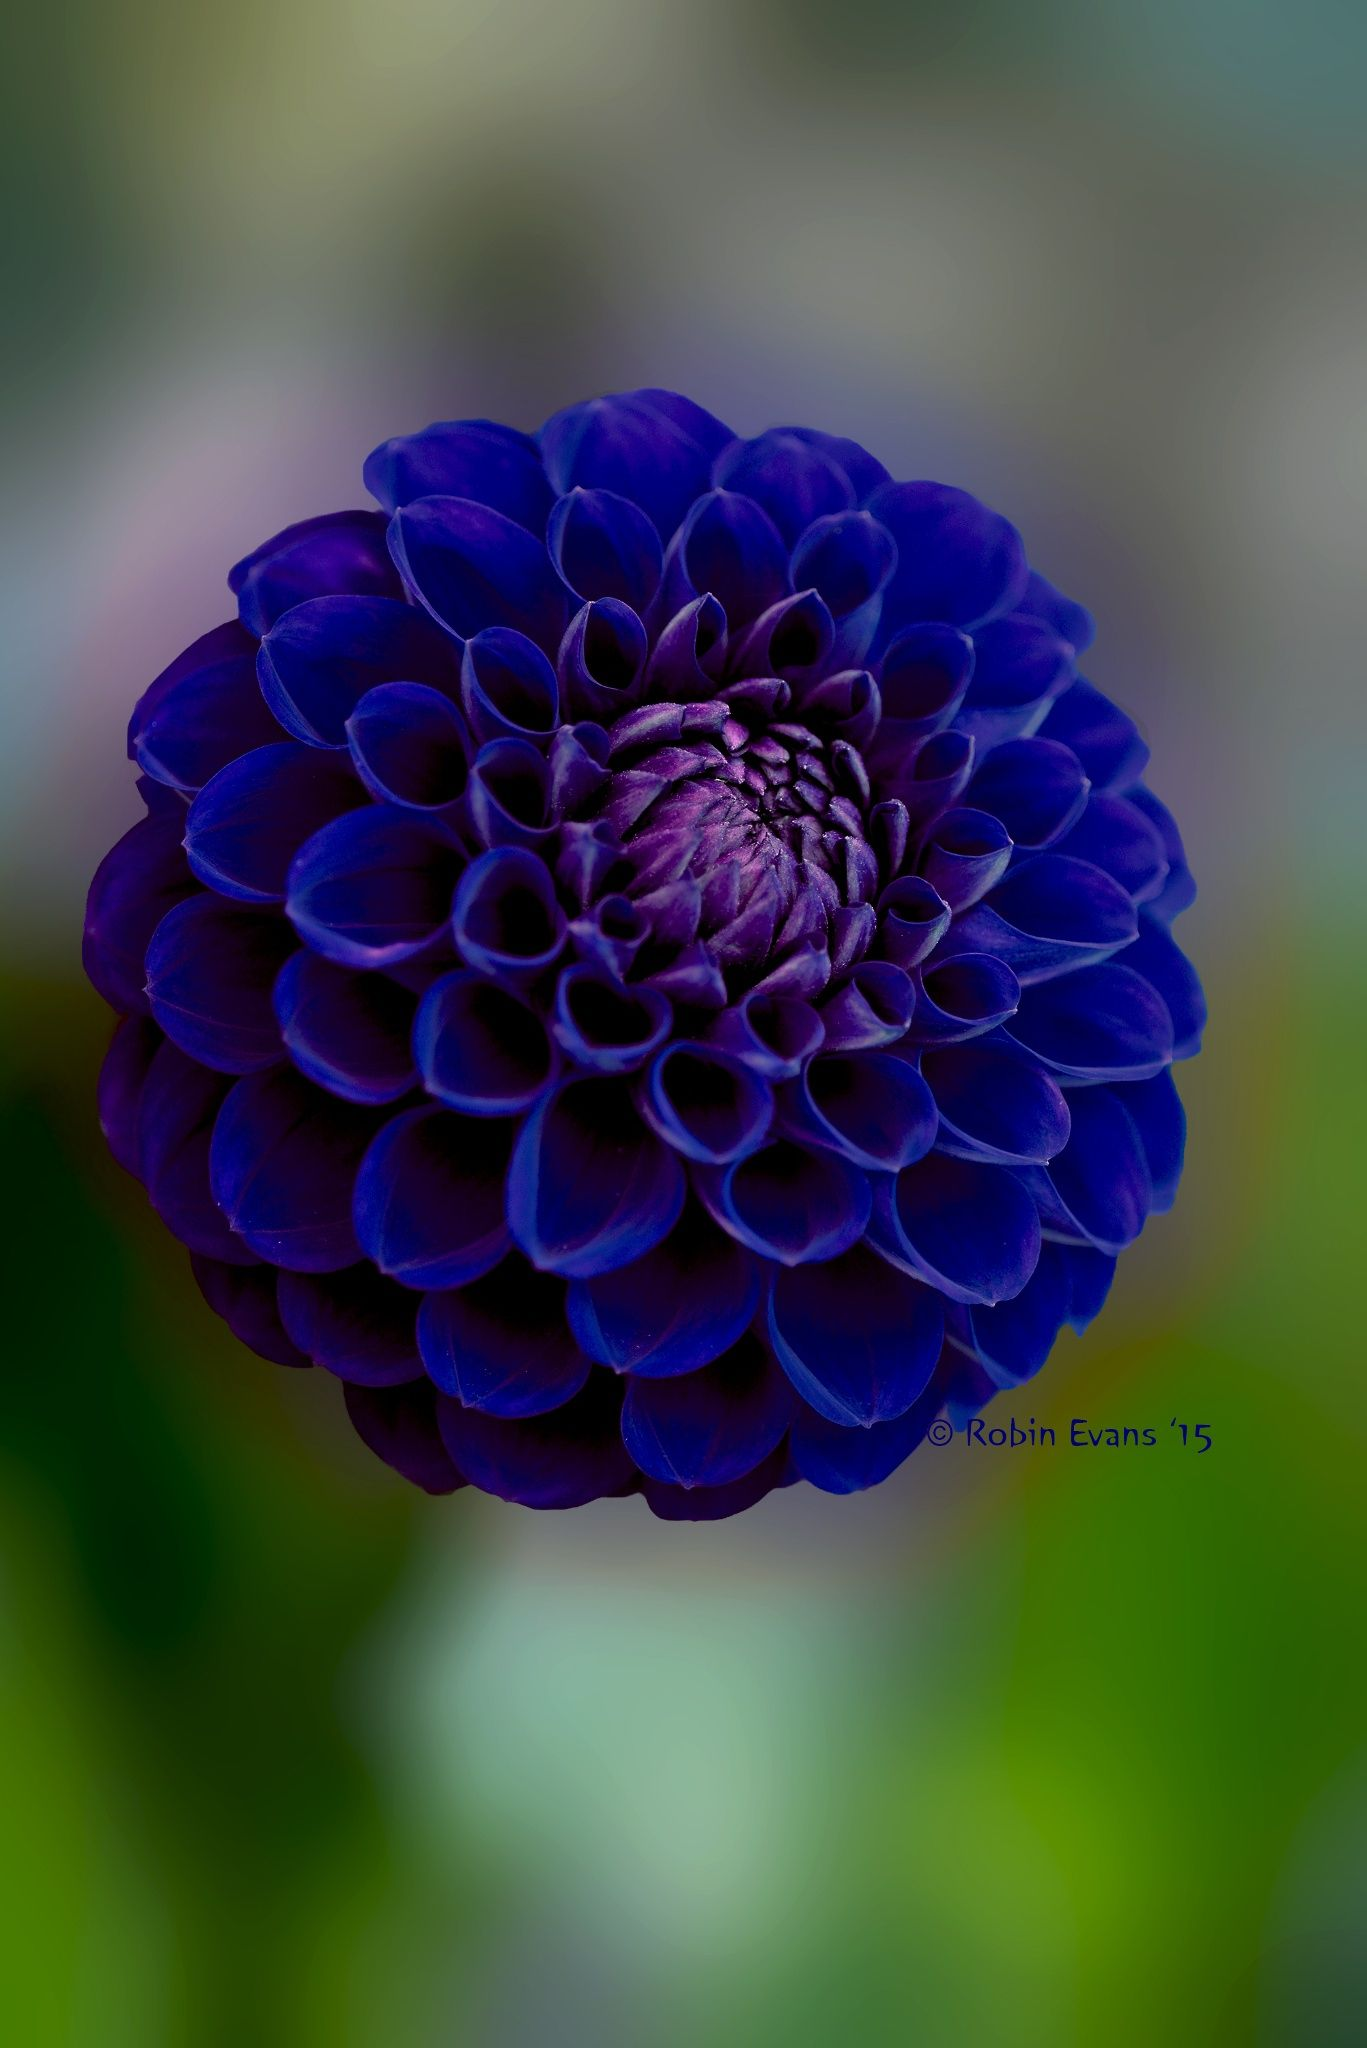 Crystal blue persuasion royal blue pompon dahlia by robin evans crystal blue persuasion royal blue pompon dahlia by robin evans really a blue dahlia izmirmasajfo